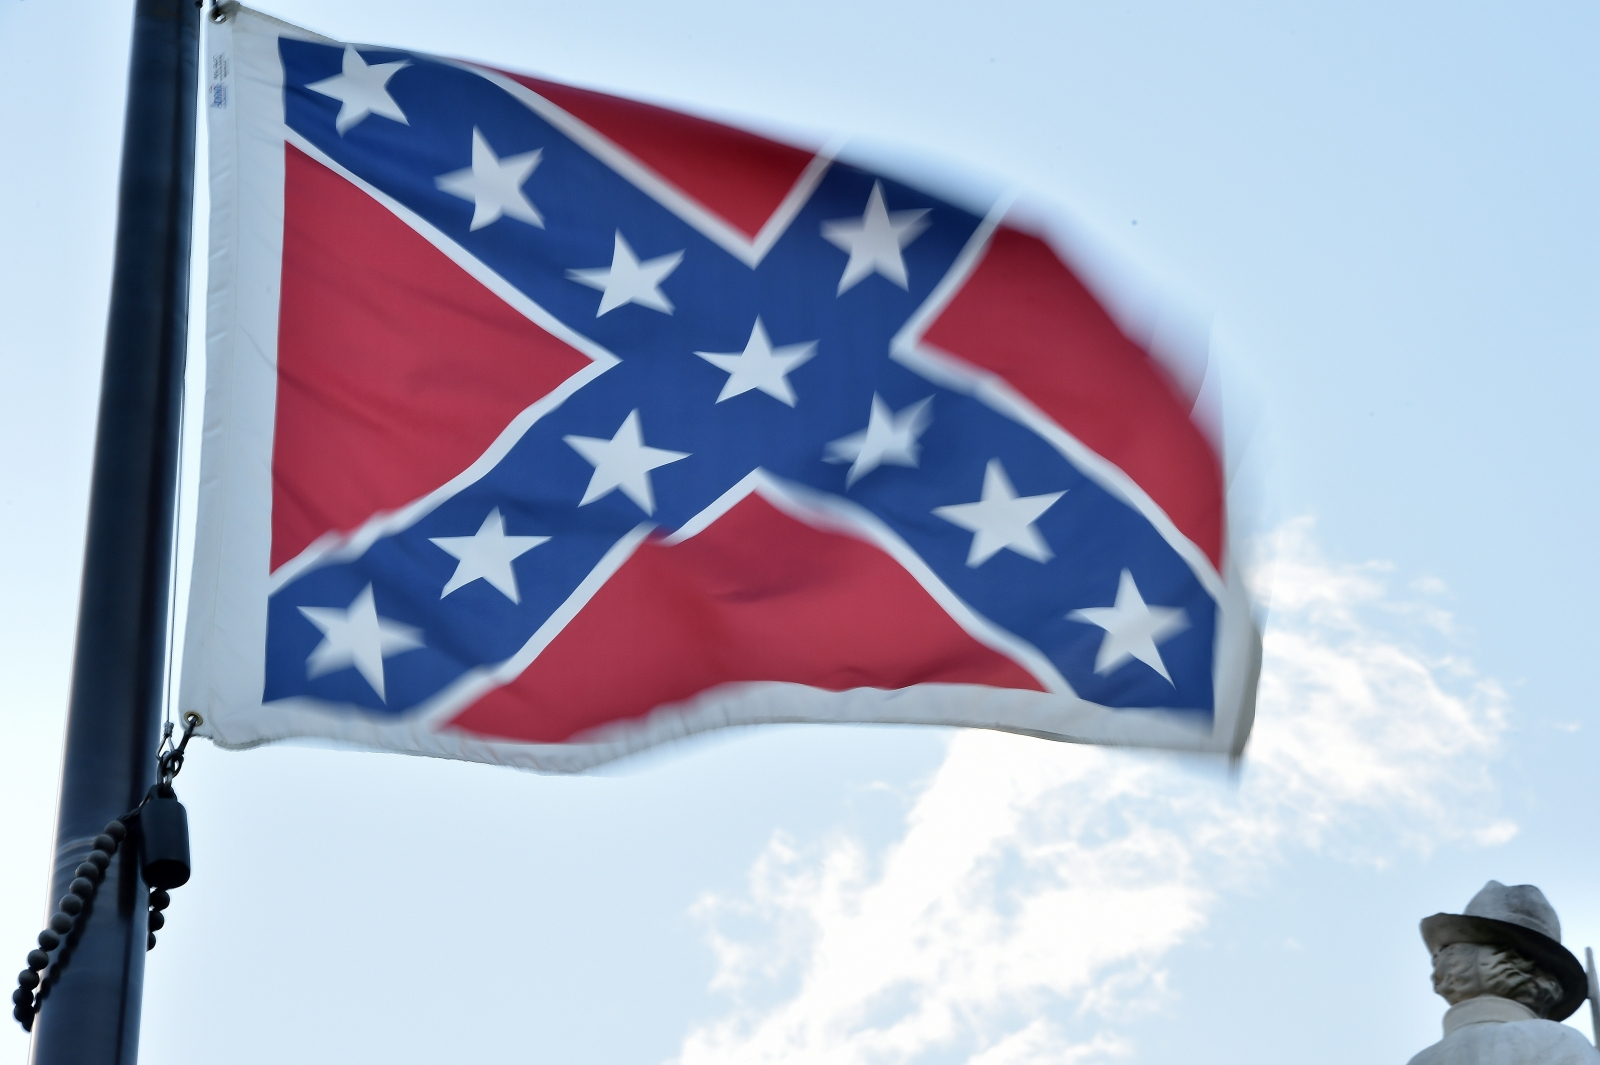 The Confederate flag flies outside South Carolina's